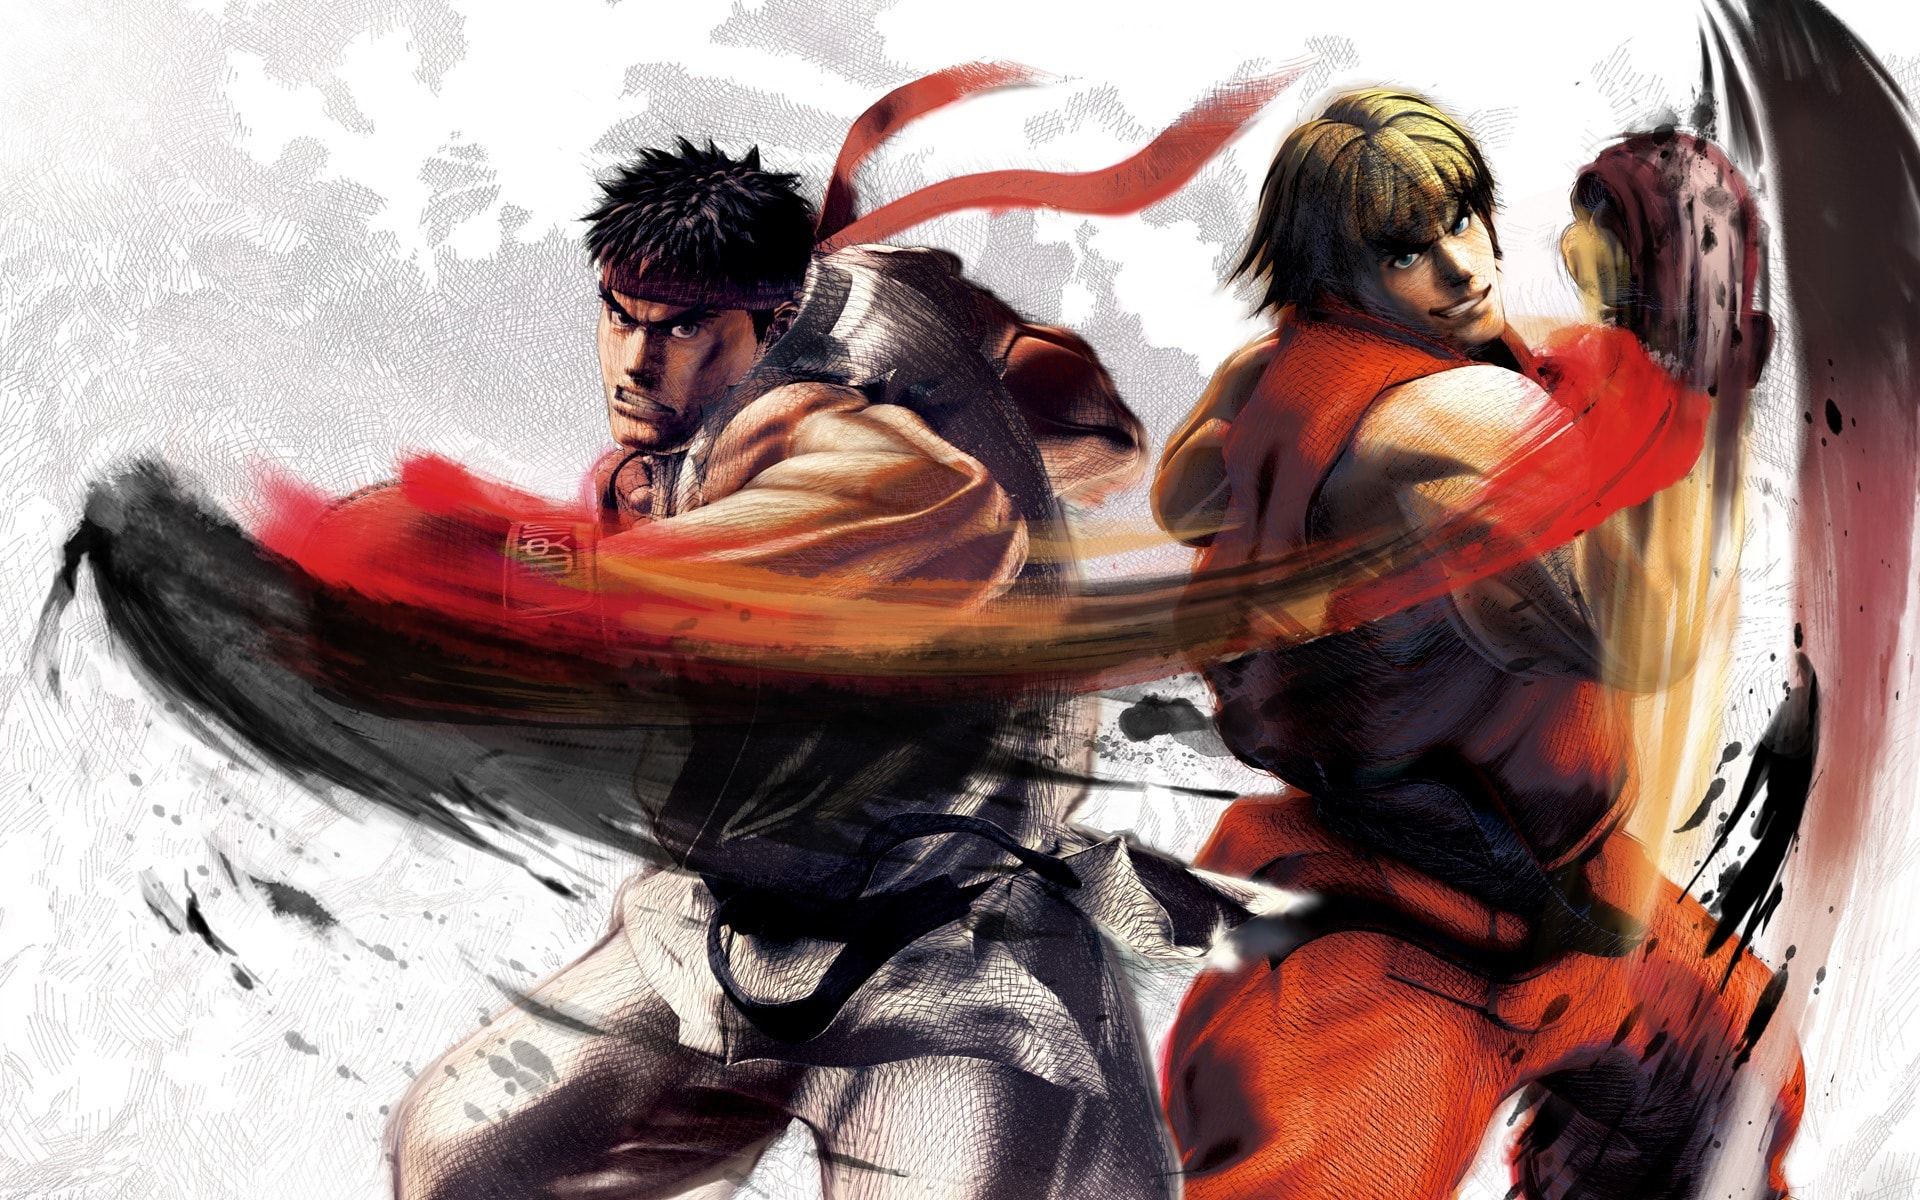 Street Fighter 5 Desktop wallpaper